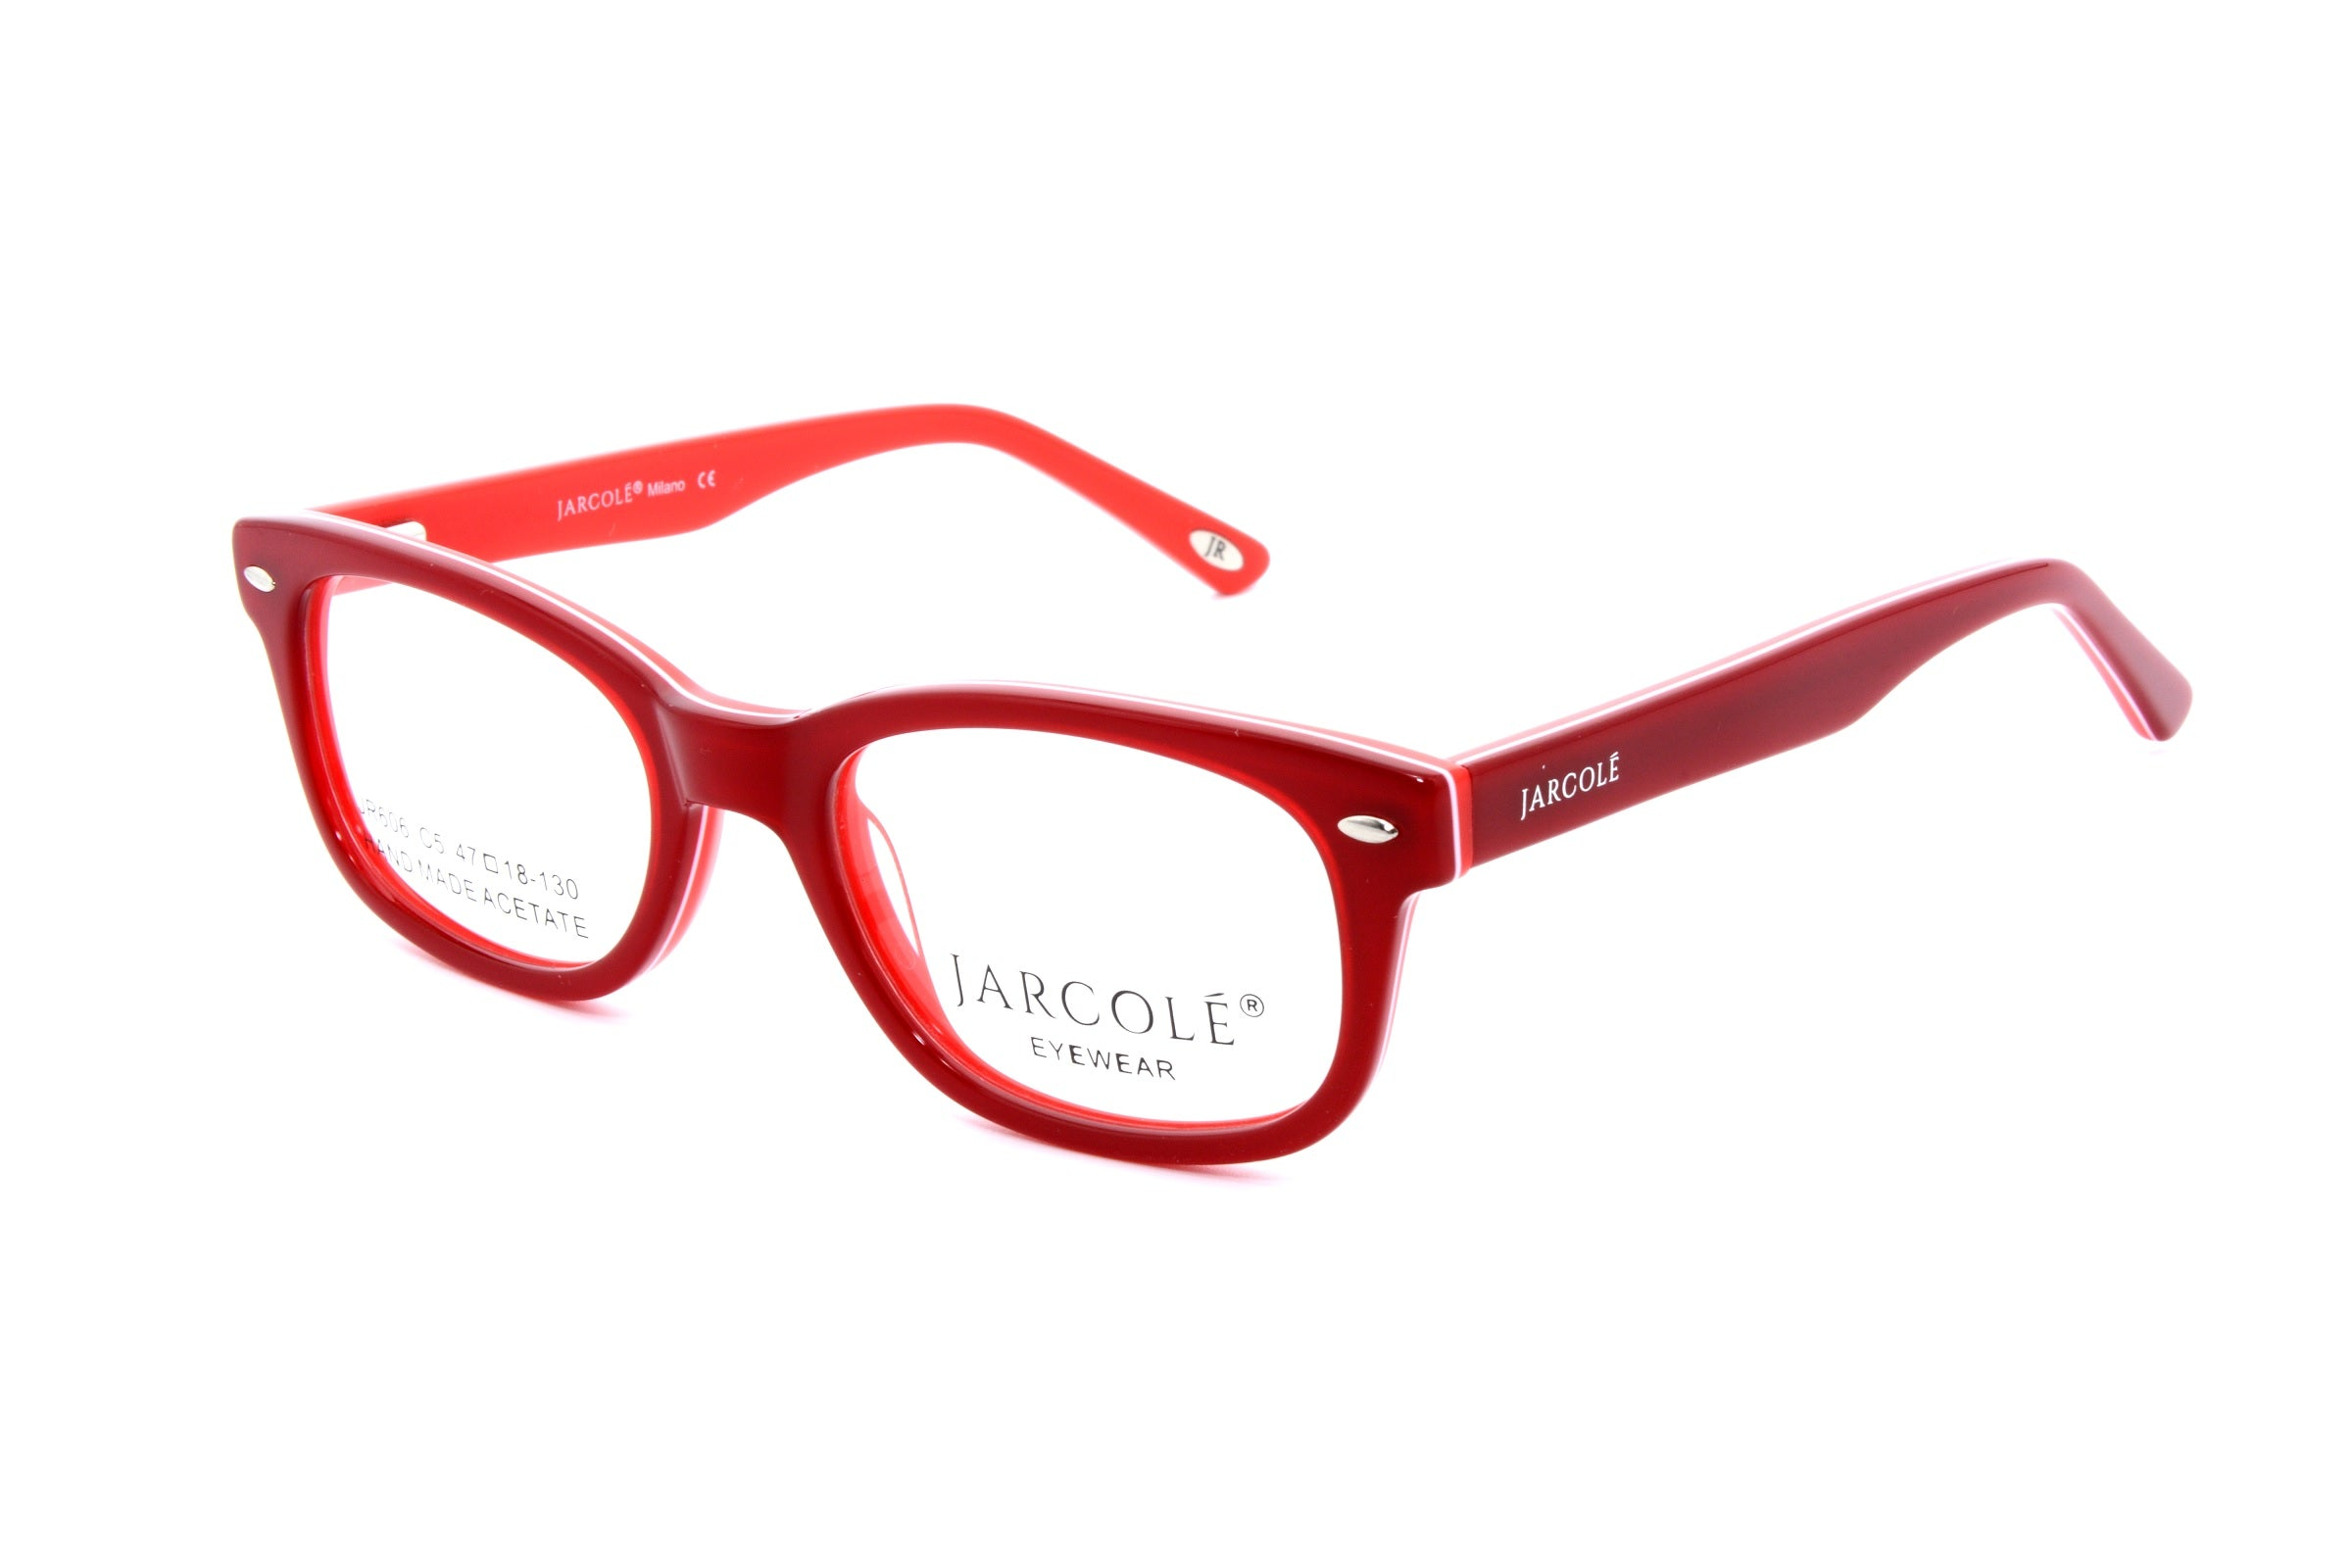 Jarcole eyewear 605, C5 - Optics Trading